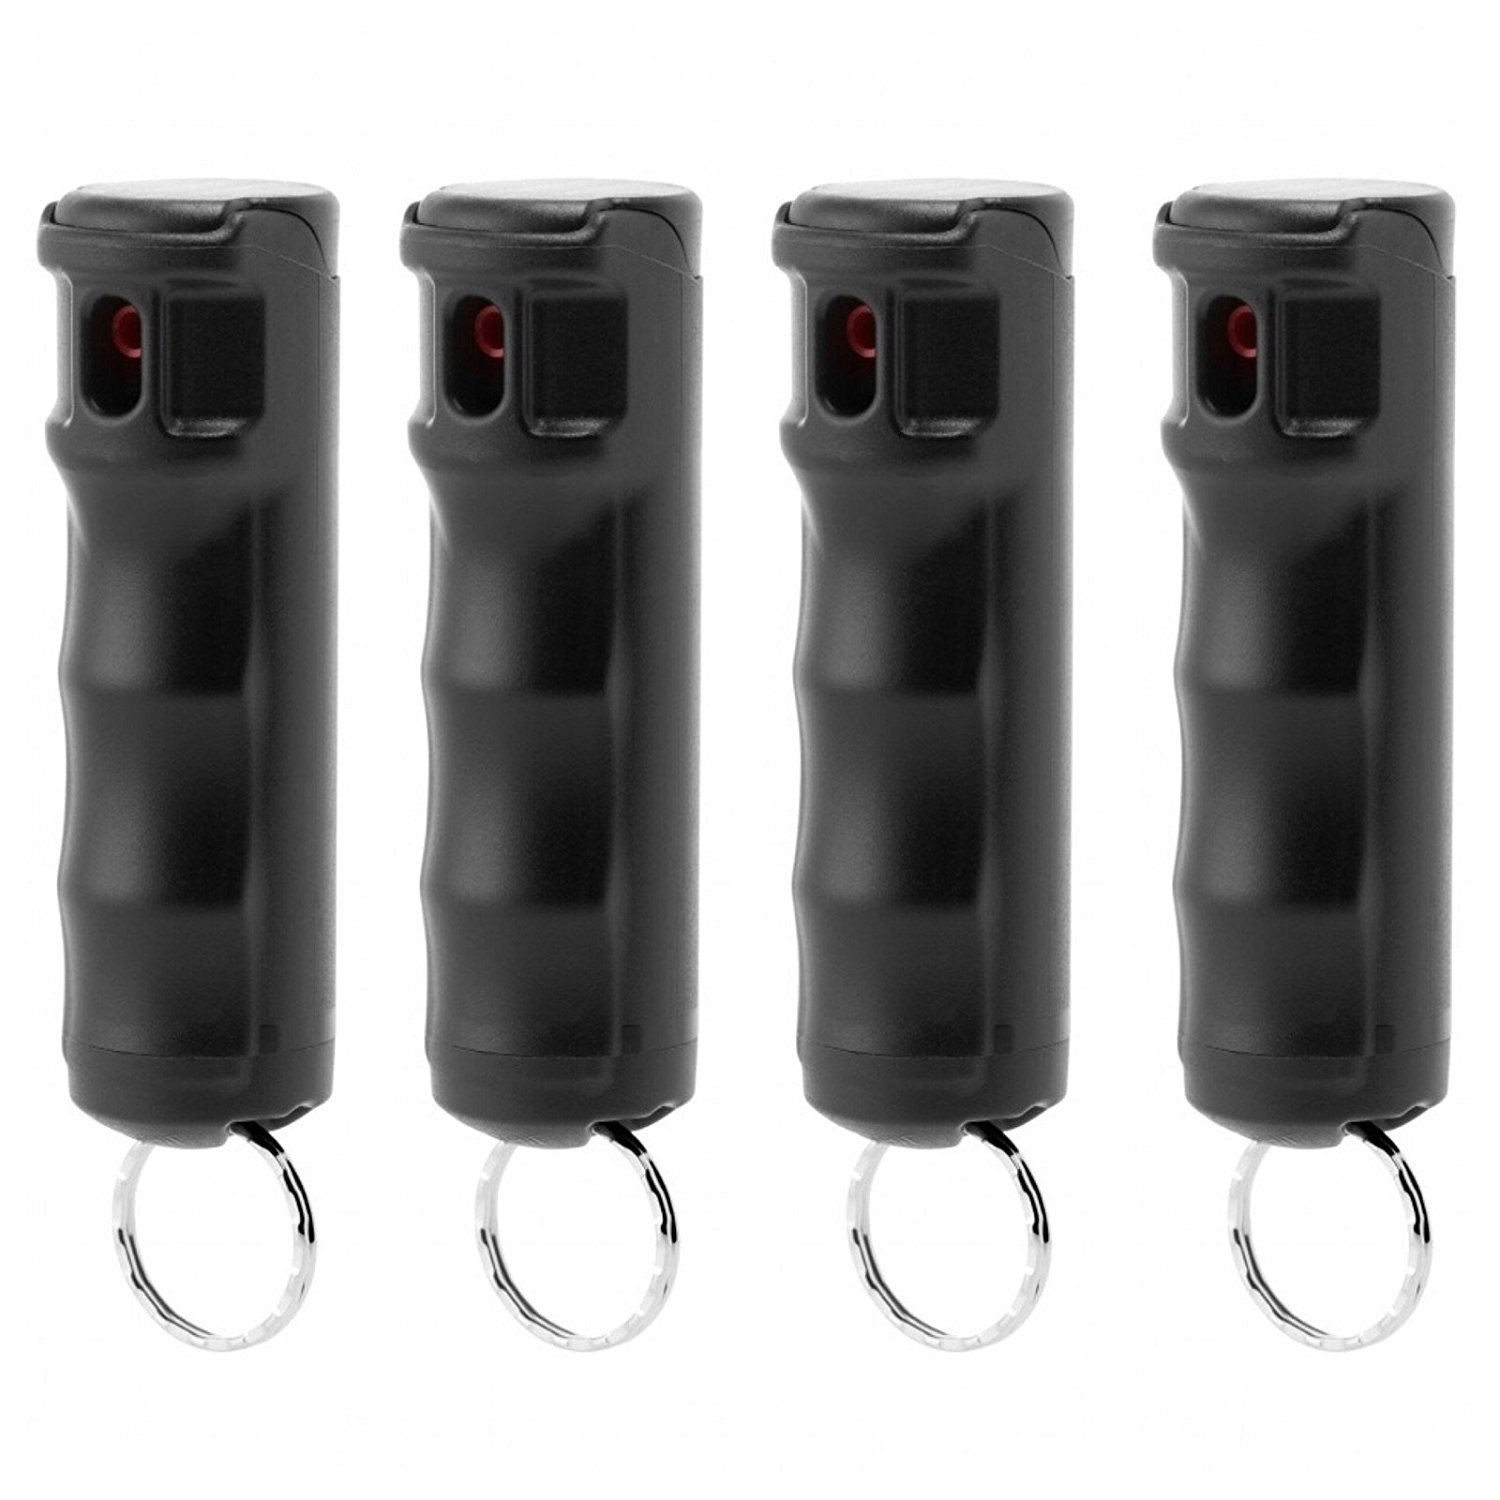 Mace Police Strength Pepper Spray with Invisible UV Identifying Dye, Keyguard Hard Case Flip Top with Key Ring and Safety Trigger, 10 Blast Stream of Up To 10 Feet (by Security) (Black 4-Pack)